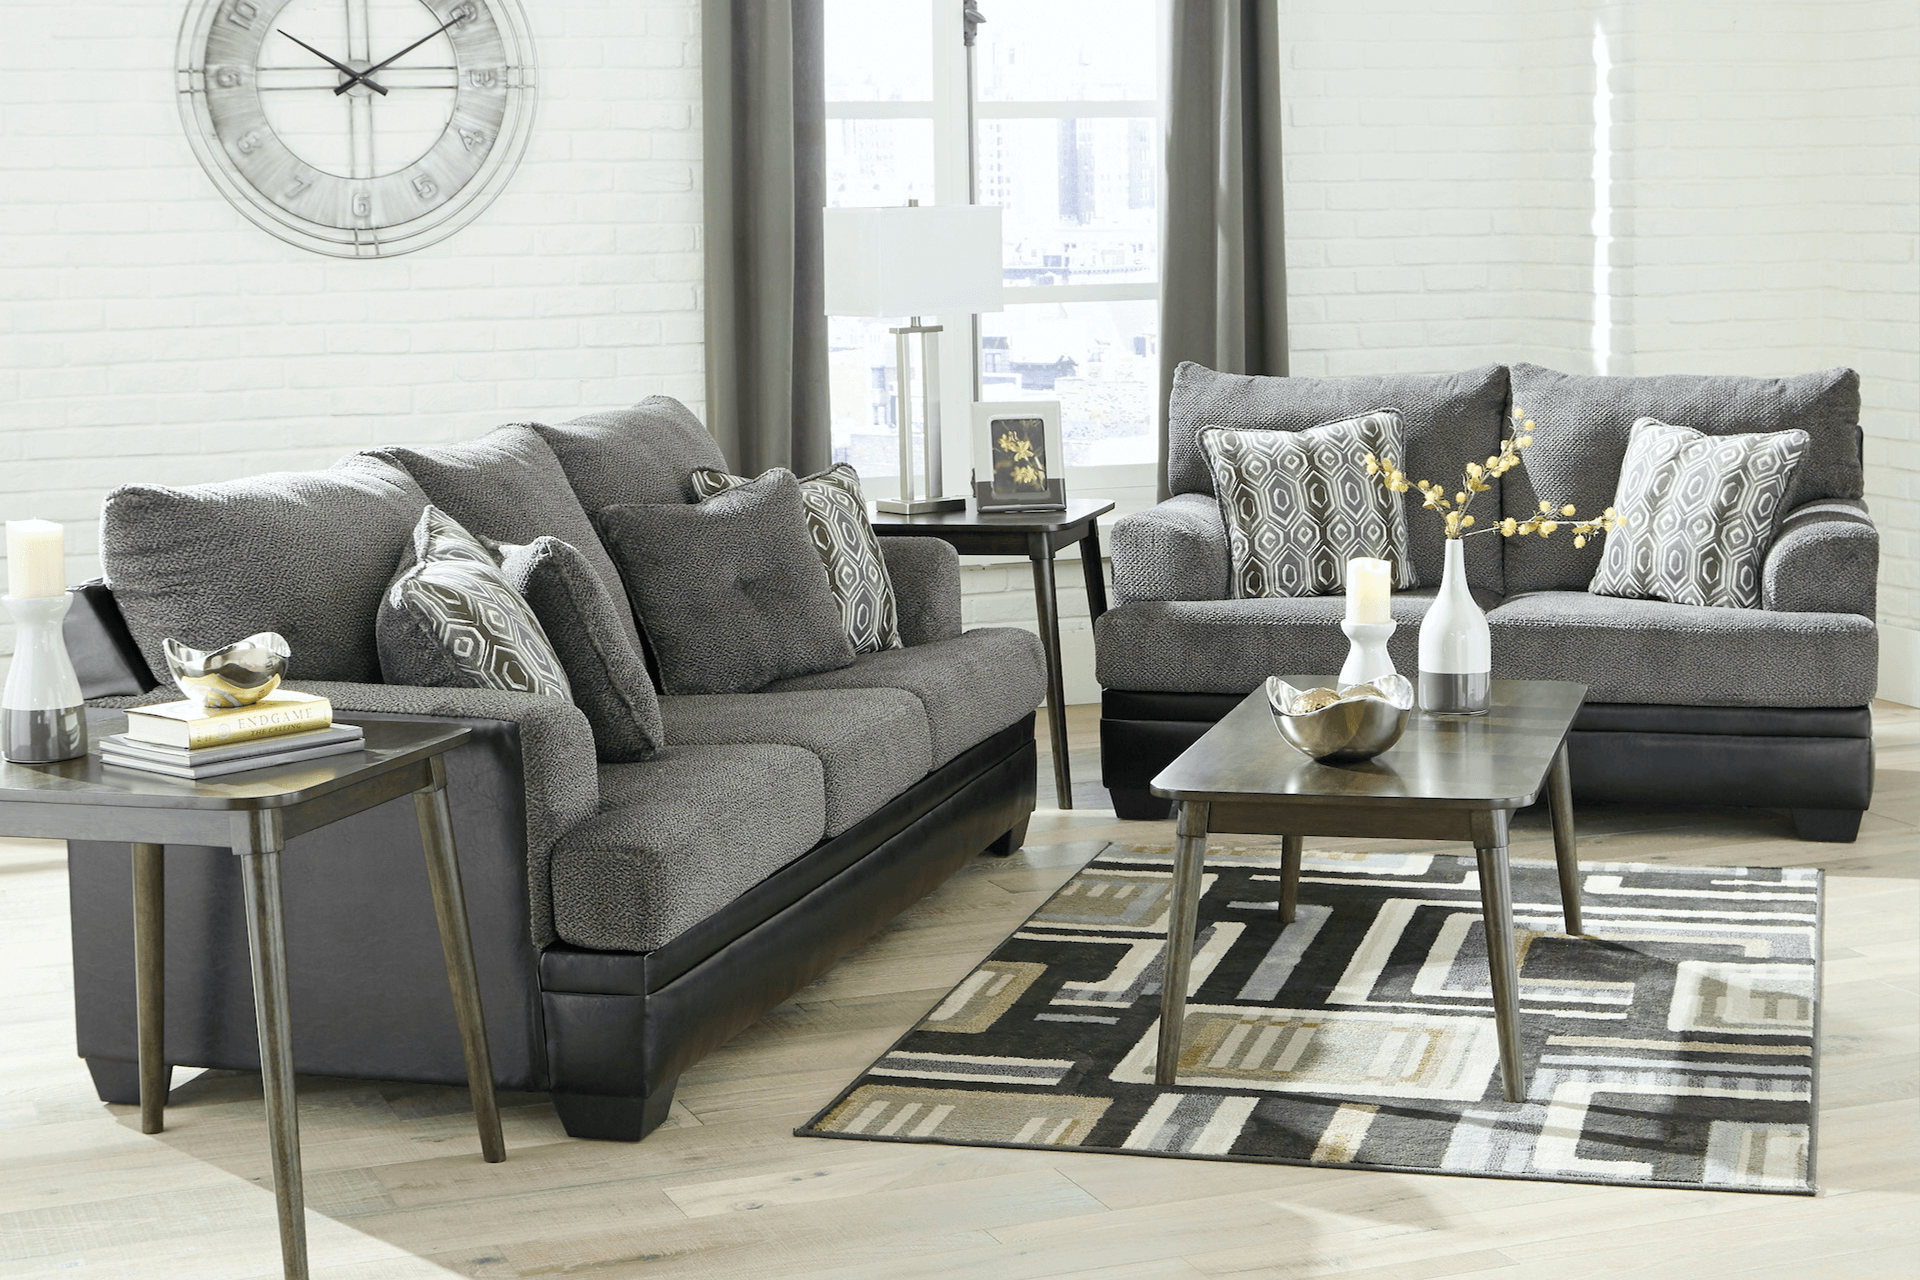 Atlantic_Furniture-Sofa_Sets-78202_SL_T276_hi-res